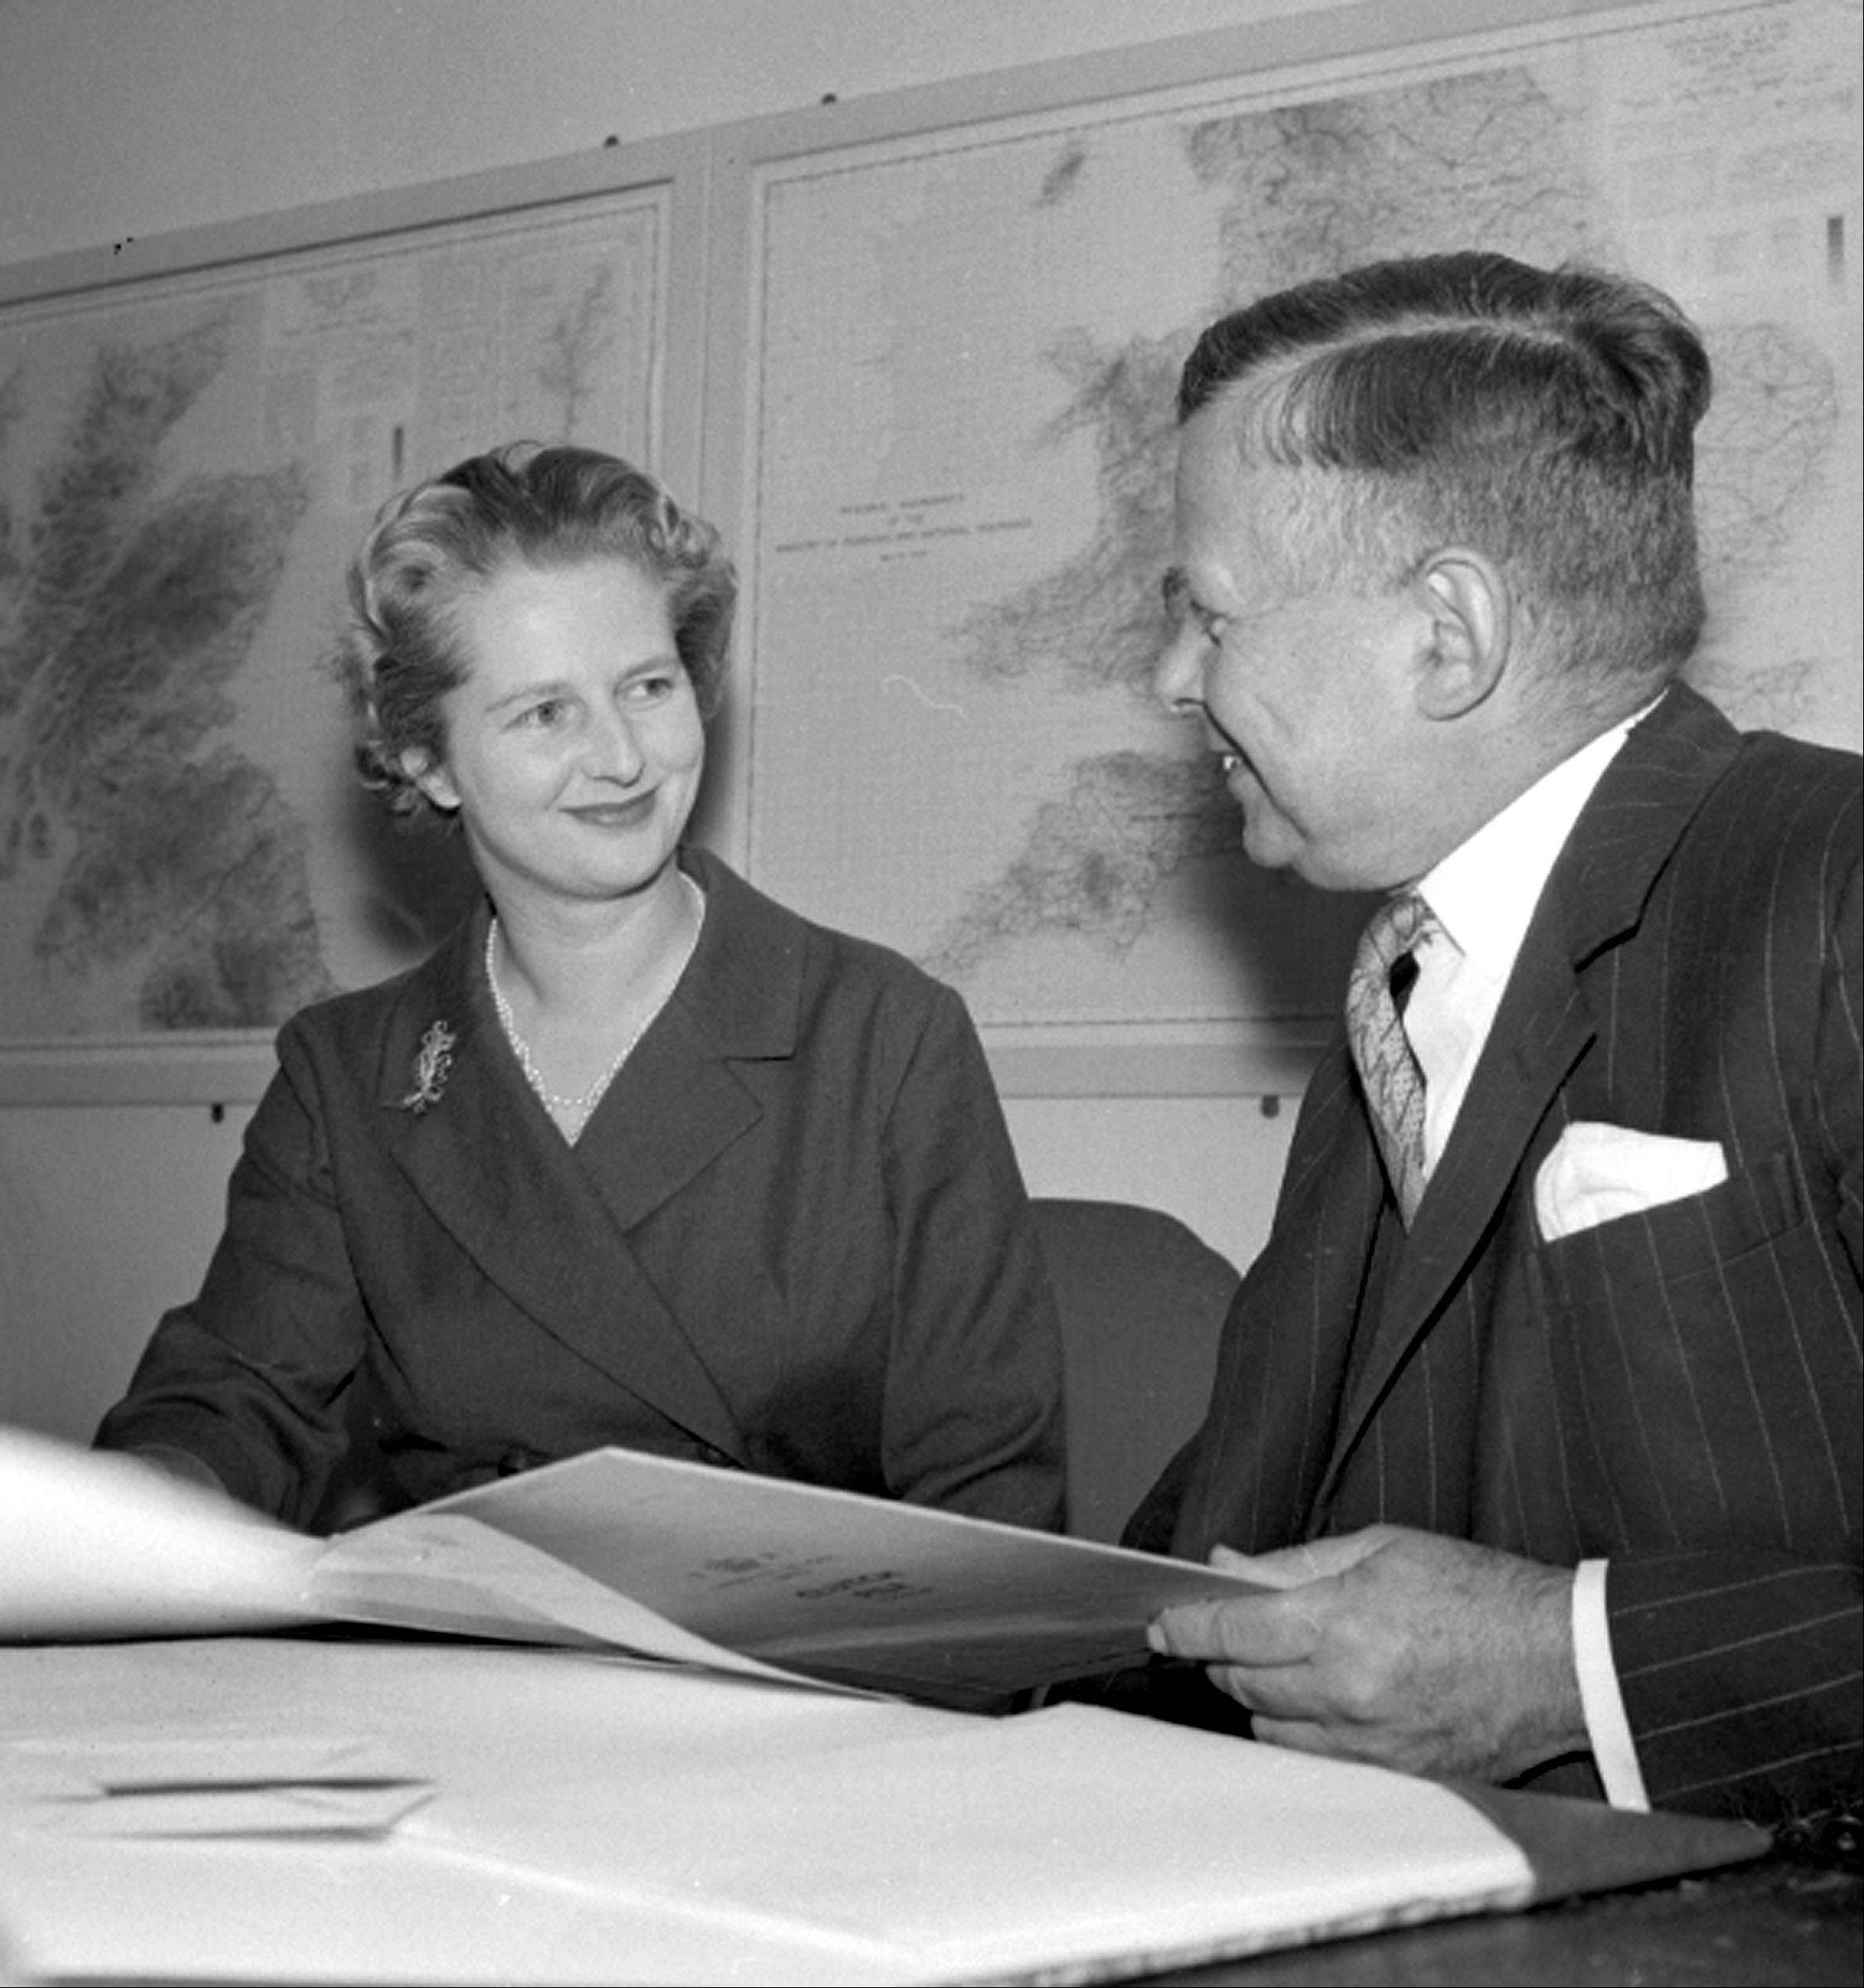 In an Oct. 12, 1961 file photo, Mrs. Margaret Thatcher, the newly-appointed Joint Parliamentary Secretary at the Ministry of Pensions and national Insurance, talks with the Minister John Boyd Carpenter, as she begins her new job at the Ministry, in London. Thatchers former spokesman, Tim Bell, said that the former British Prime Minister Margaret Thatcher had died Monday morning, April 8, 2013, of a stroke. She was 87.